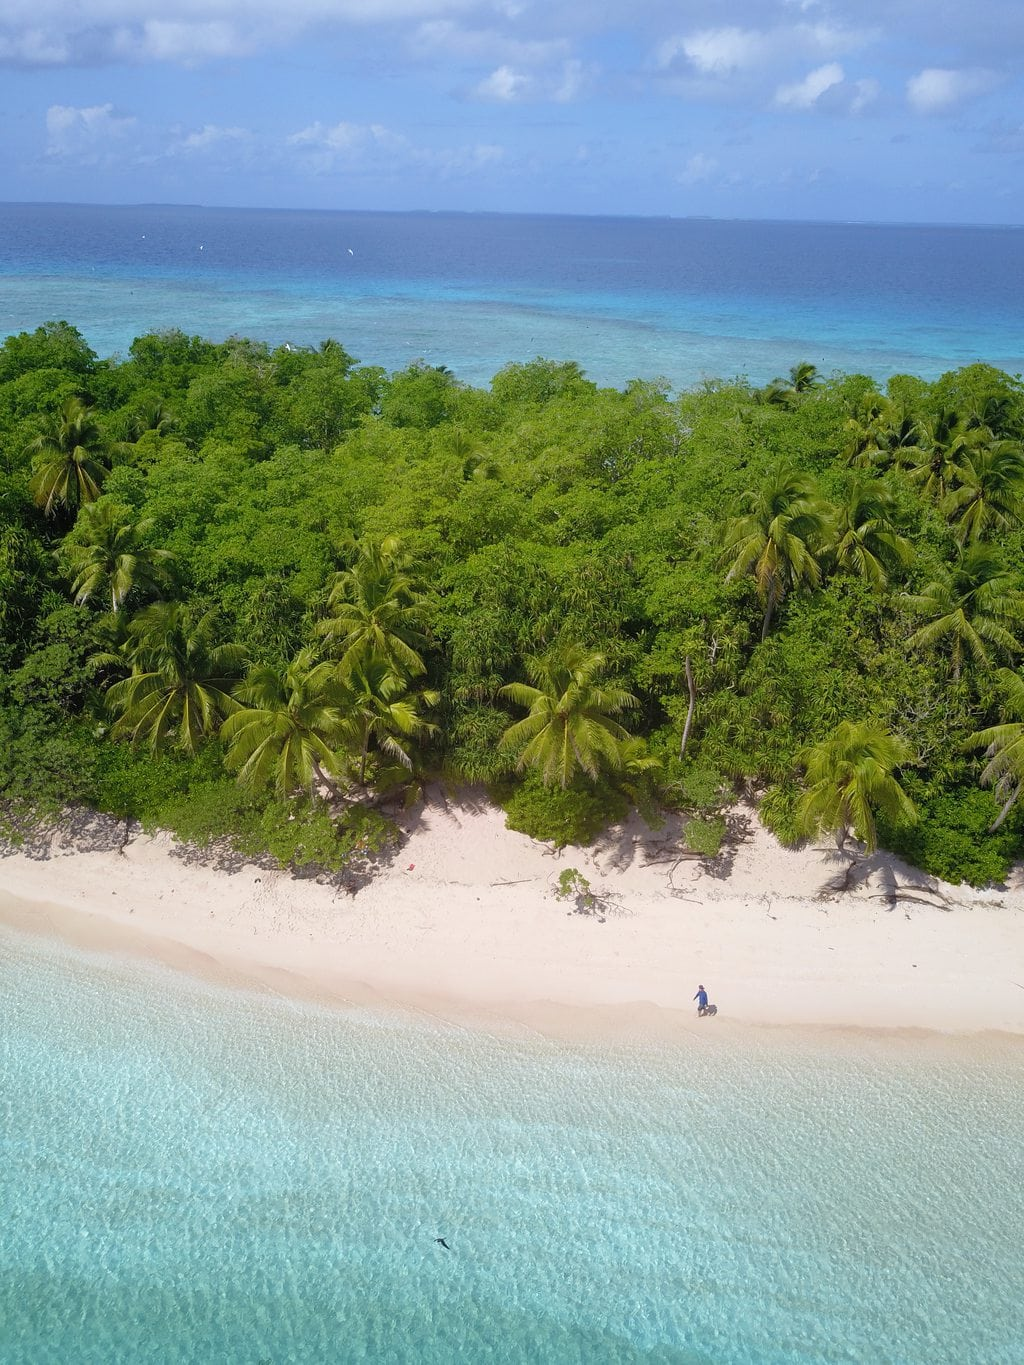 Tuvalu Conservation area